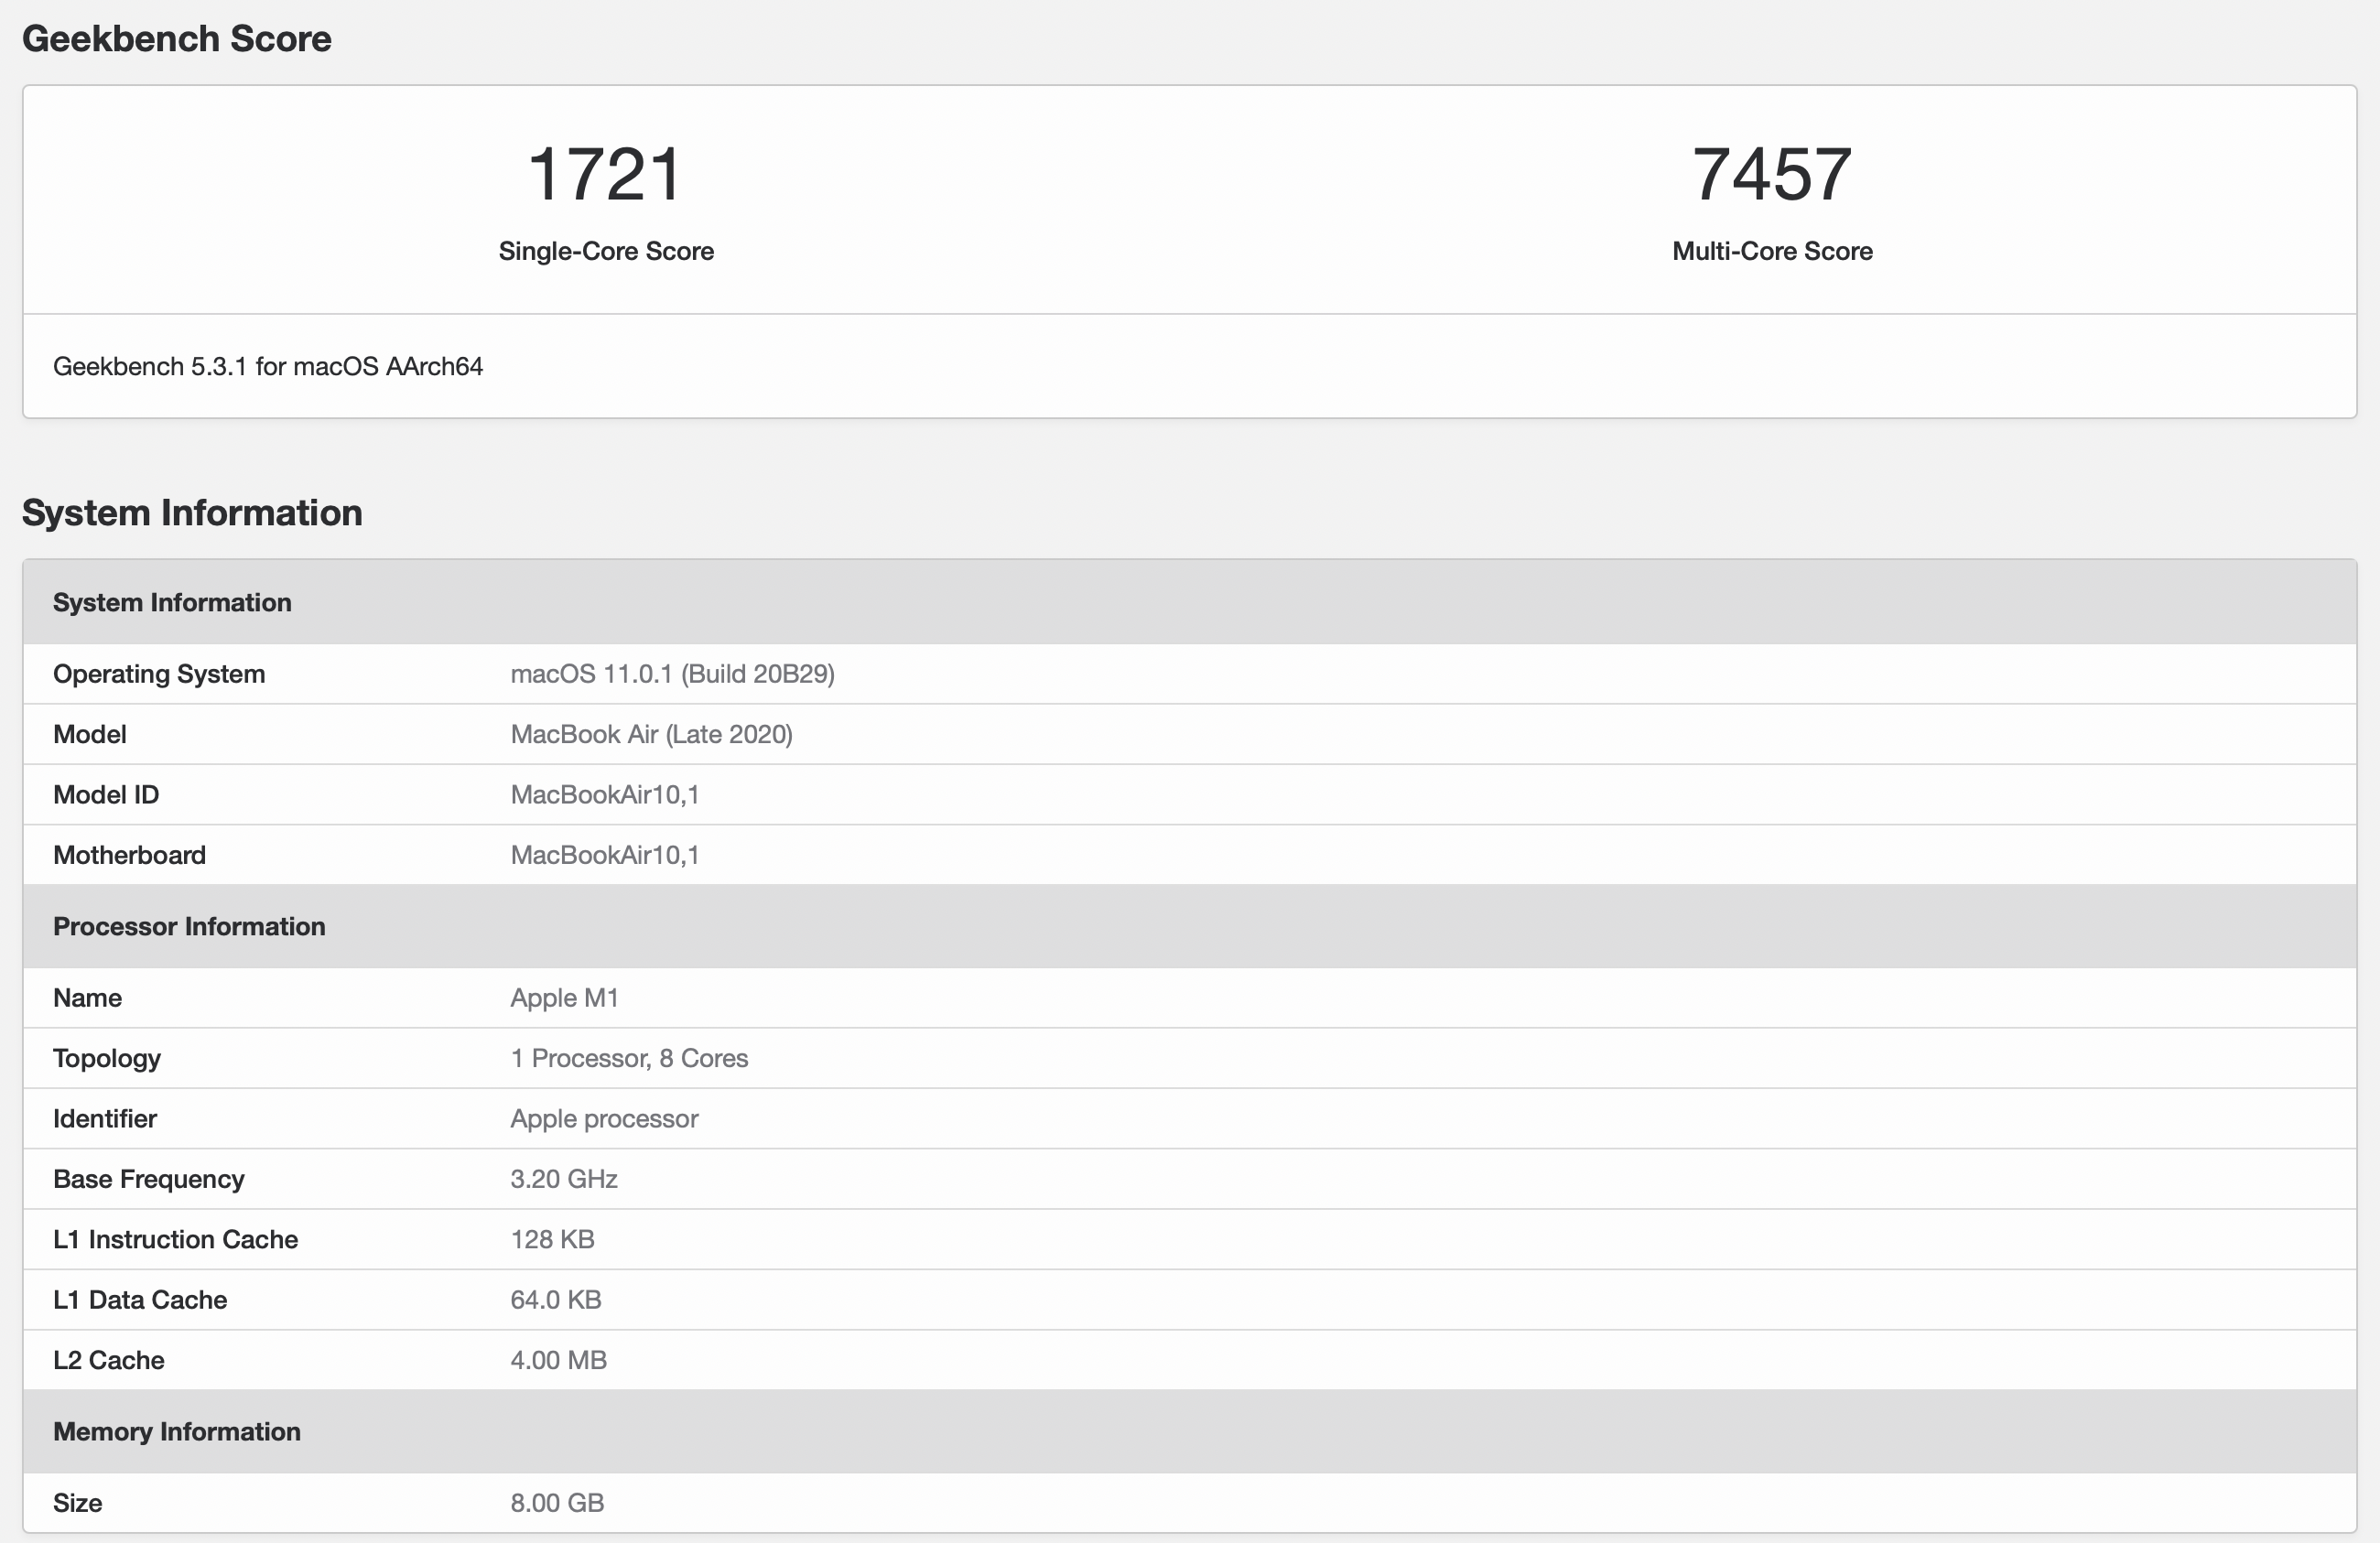 Geekbench macbook air m1 2020